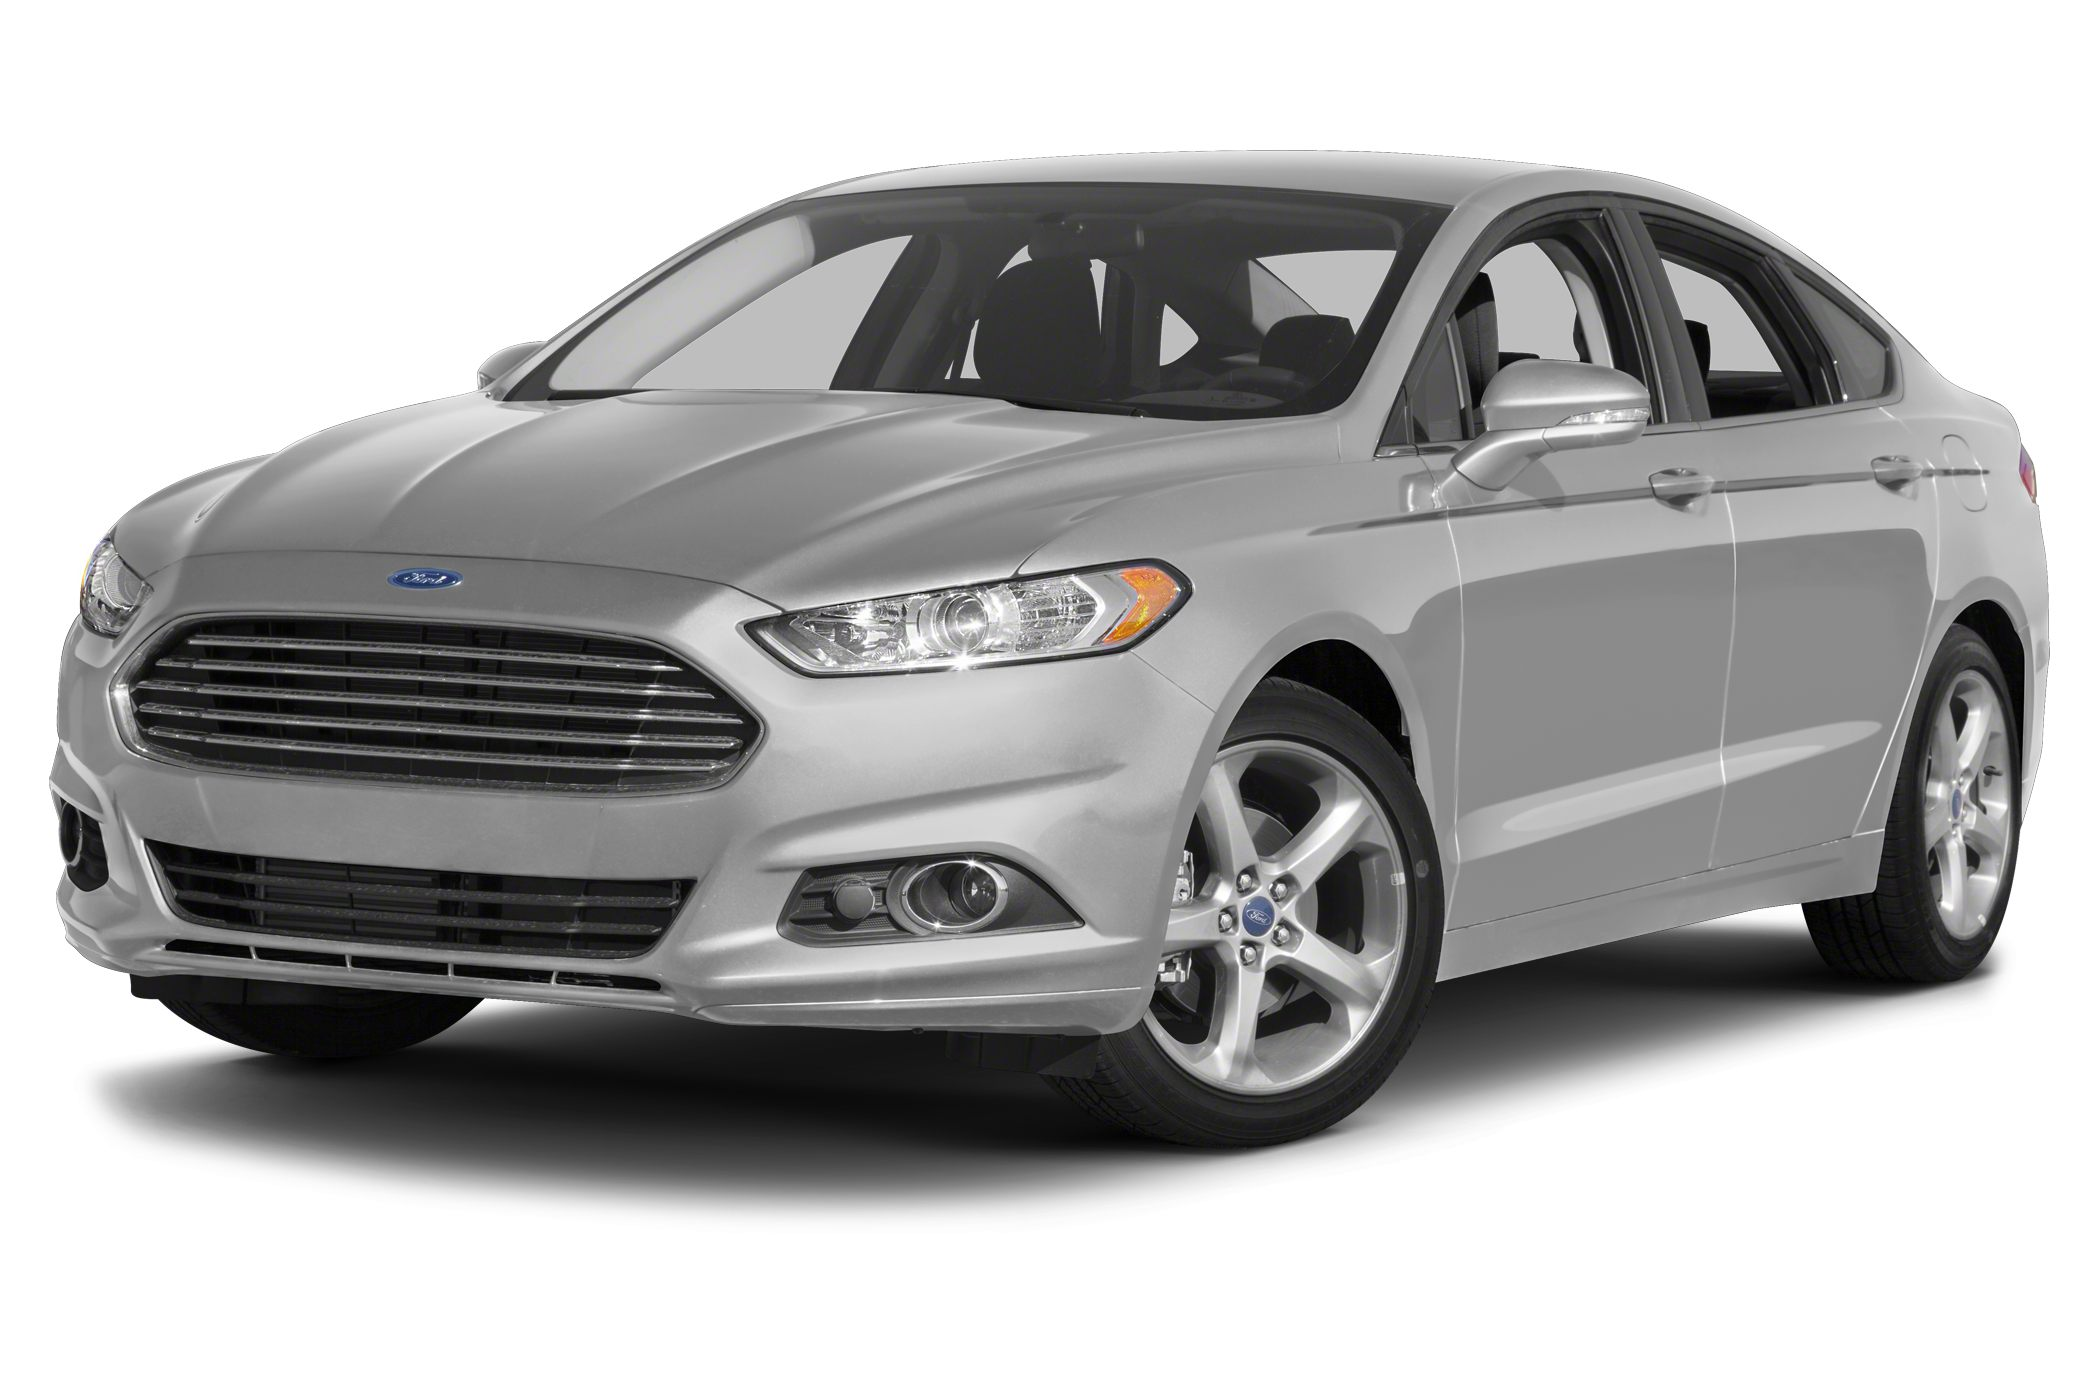 2013 Ford Fusion SE Sedan for sale in Springfield for $13,997 with 66,980 miles.